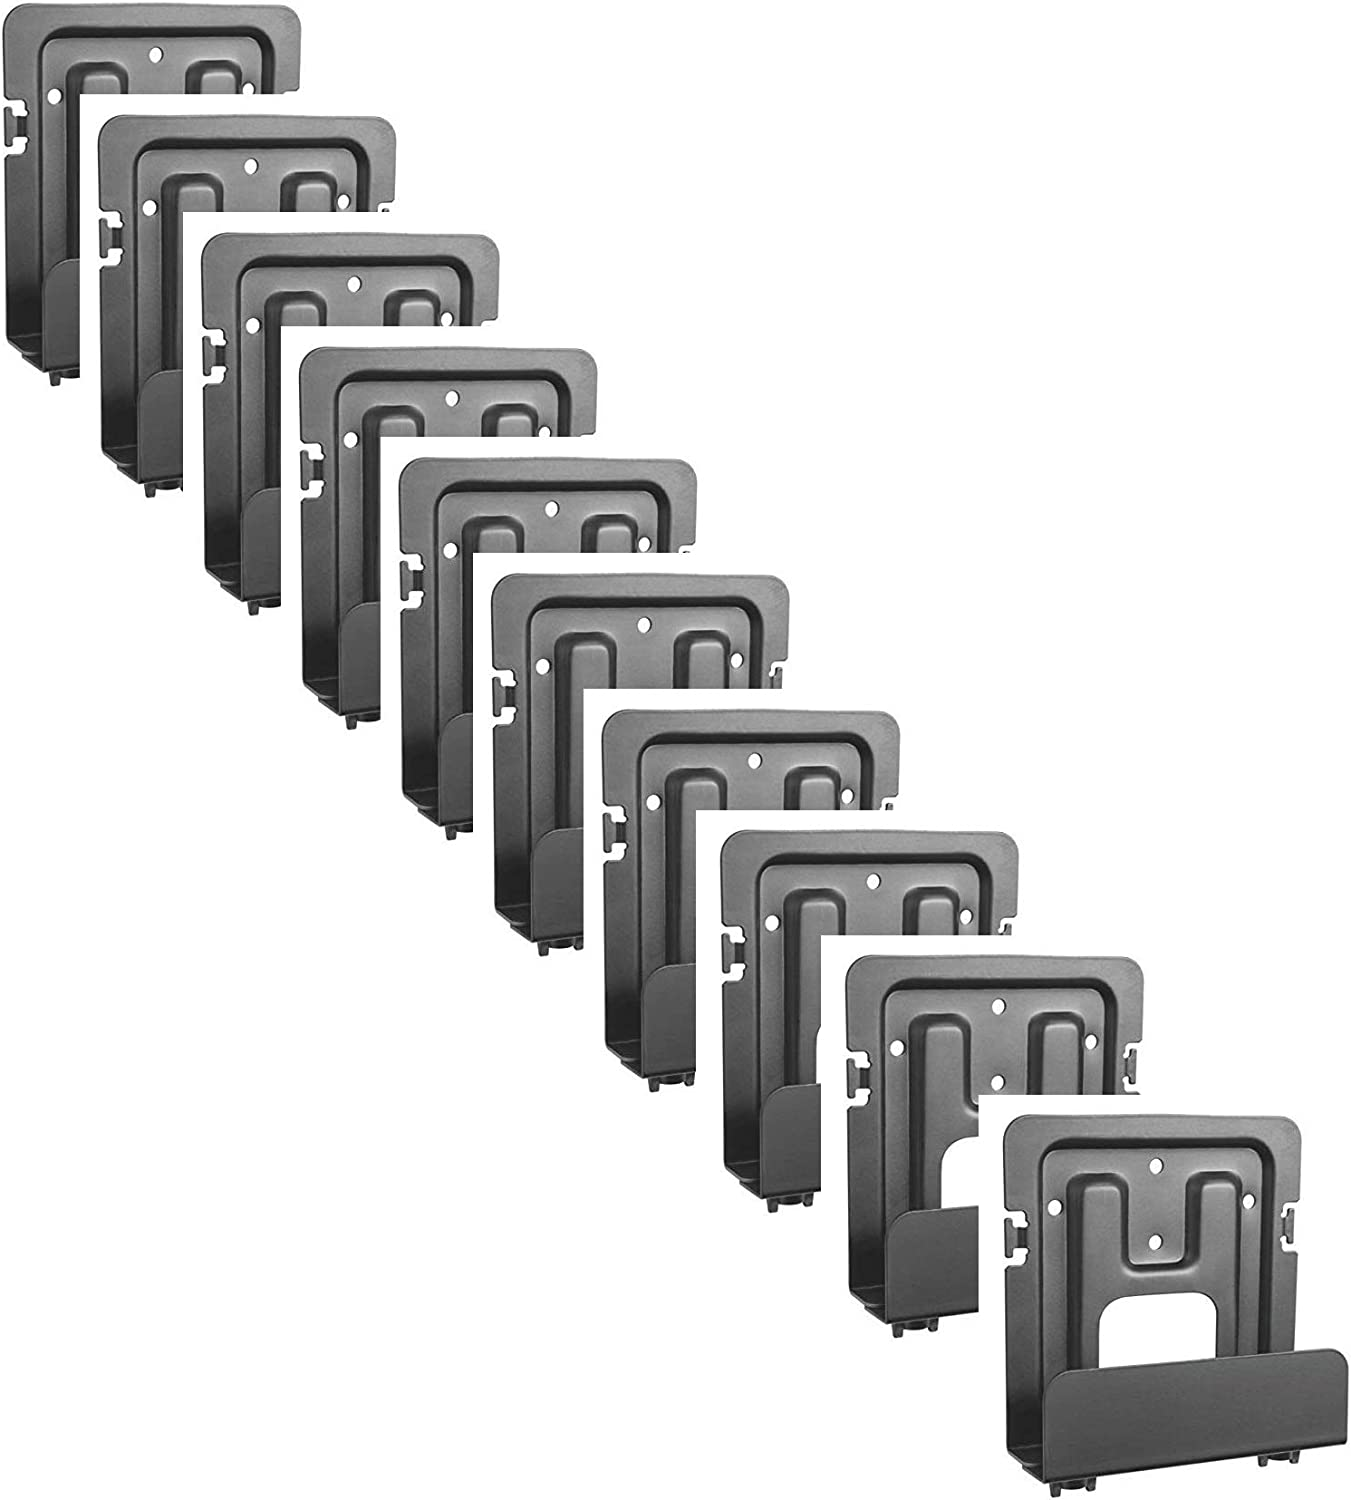 Mount Plus MP-APM-06-02 10 Pack Streaming Media Player Wall Mounting Bracket for Wide Range of Media Players, Cable and Satellite Boxes, Game Console Such As Apple TV, PS4, Xbox One (10 Pack Wide)